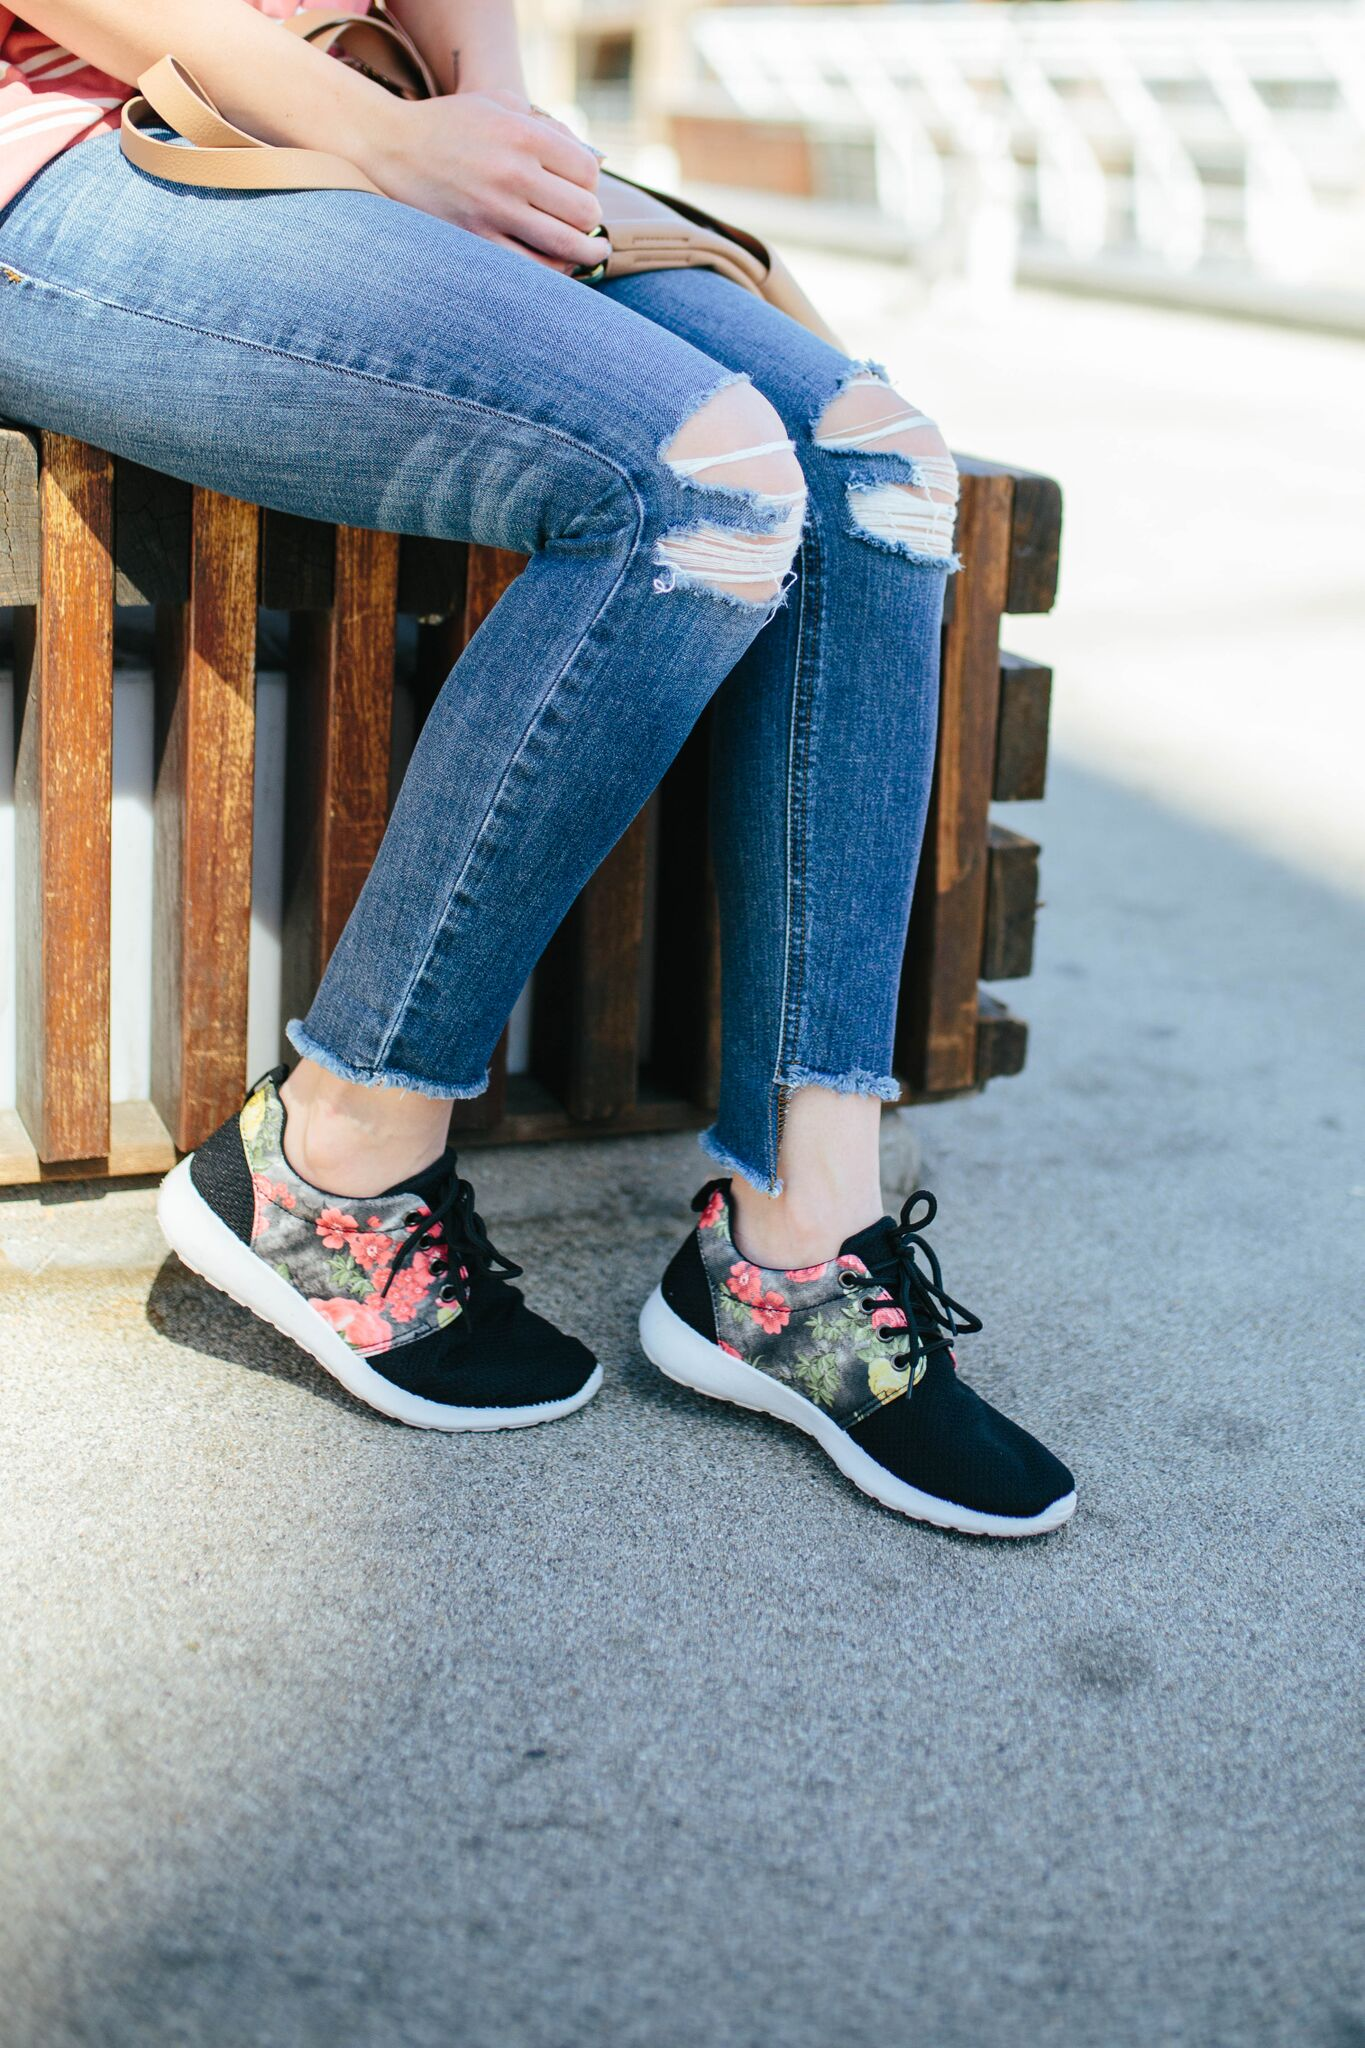 """<img src = """"wearing sneakers.jpg"""" alt = """"how-to-wear-sneakers-mom-style-with-joes-jeans-blondie-destroyed-skinny-jeans-coppola"""">"""